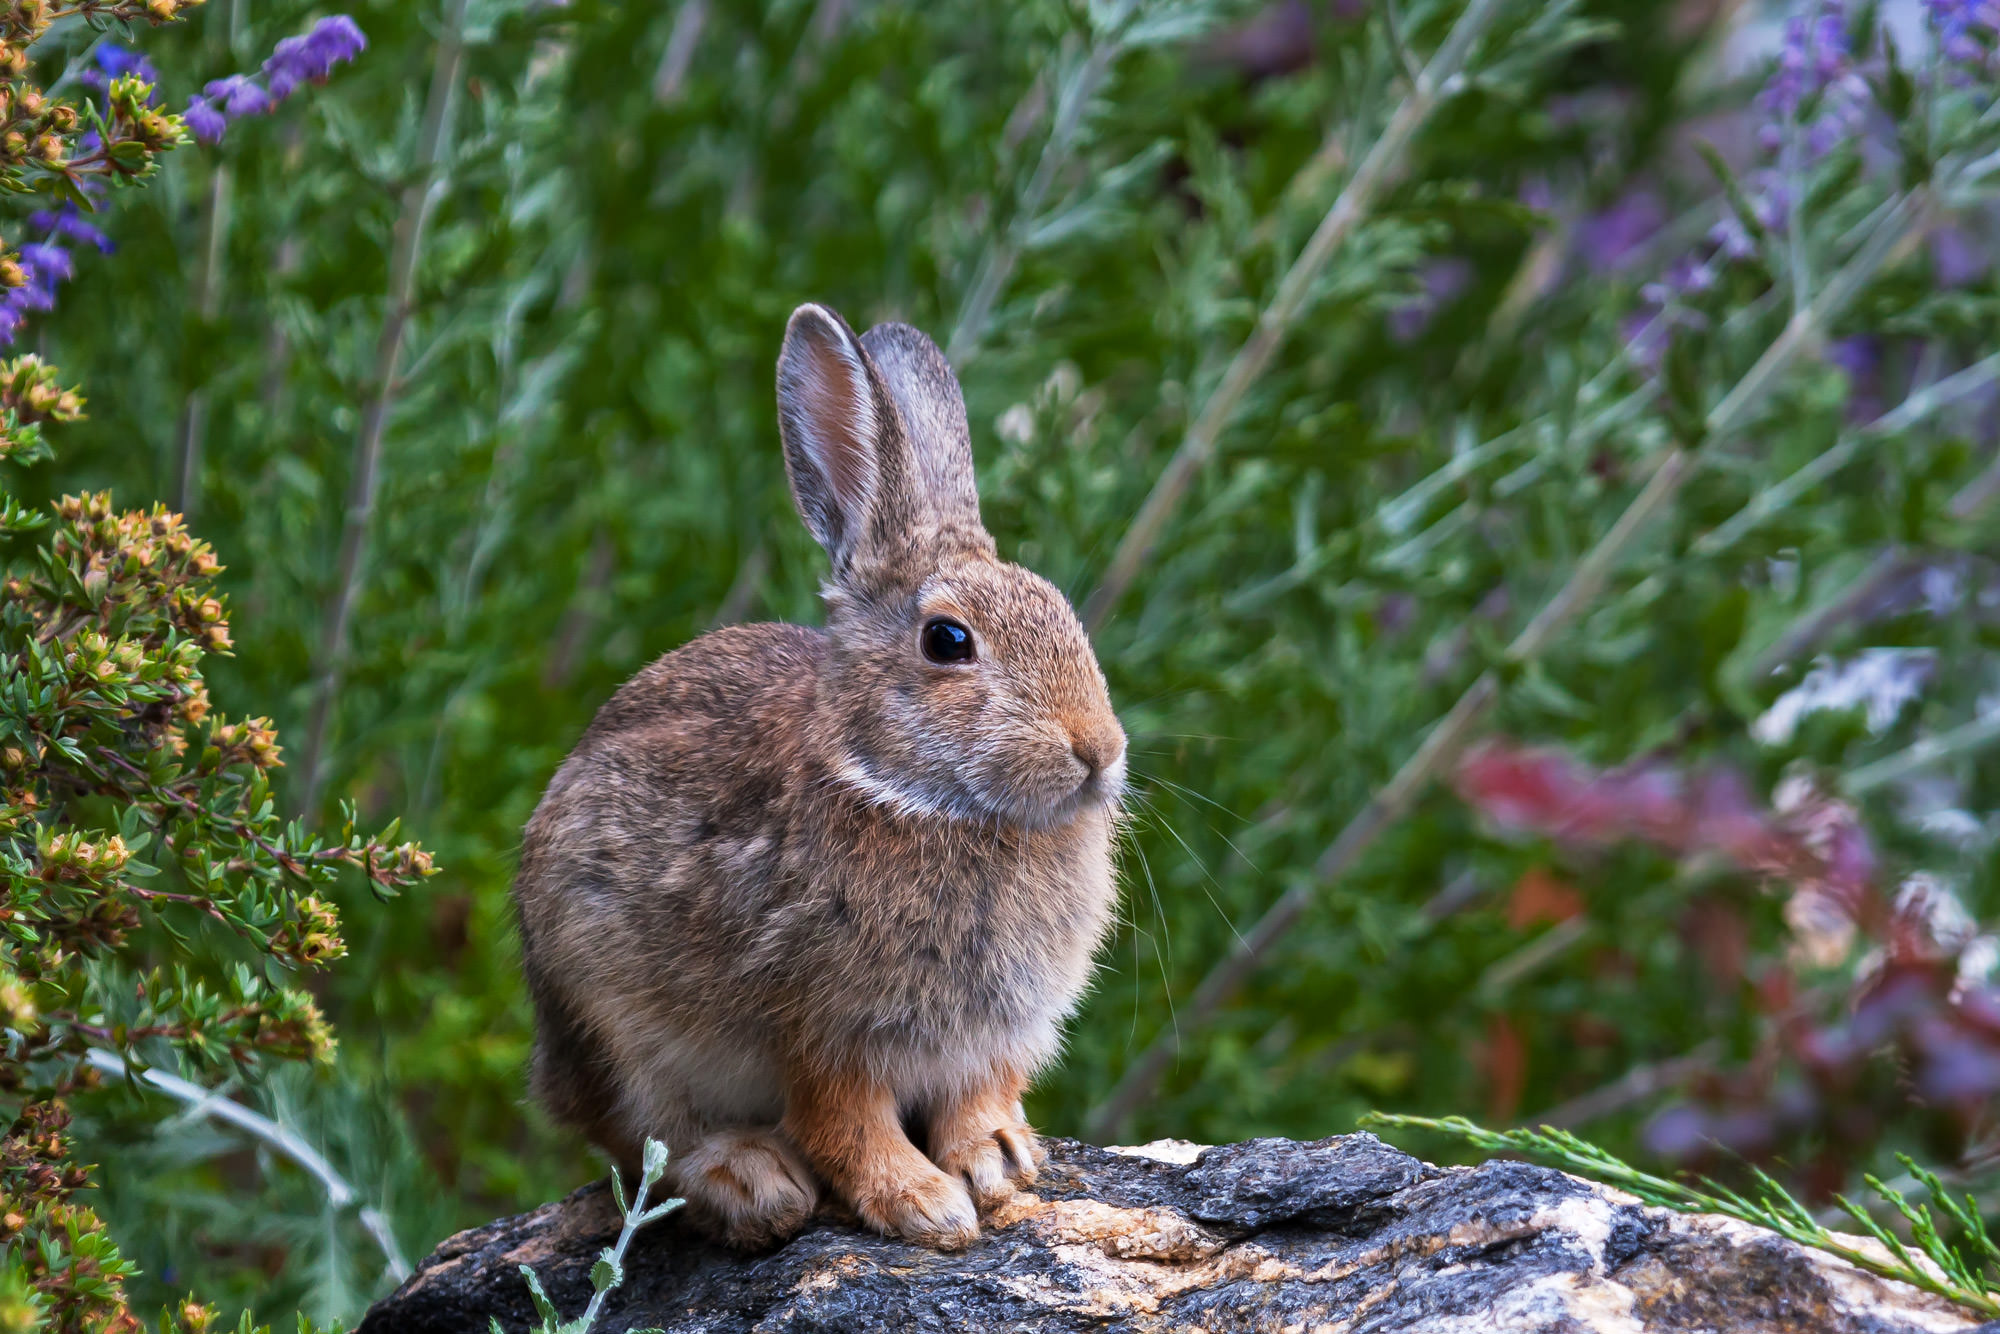 Rabbit, Colorado, Rocky Mountain, photo